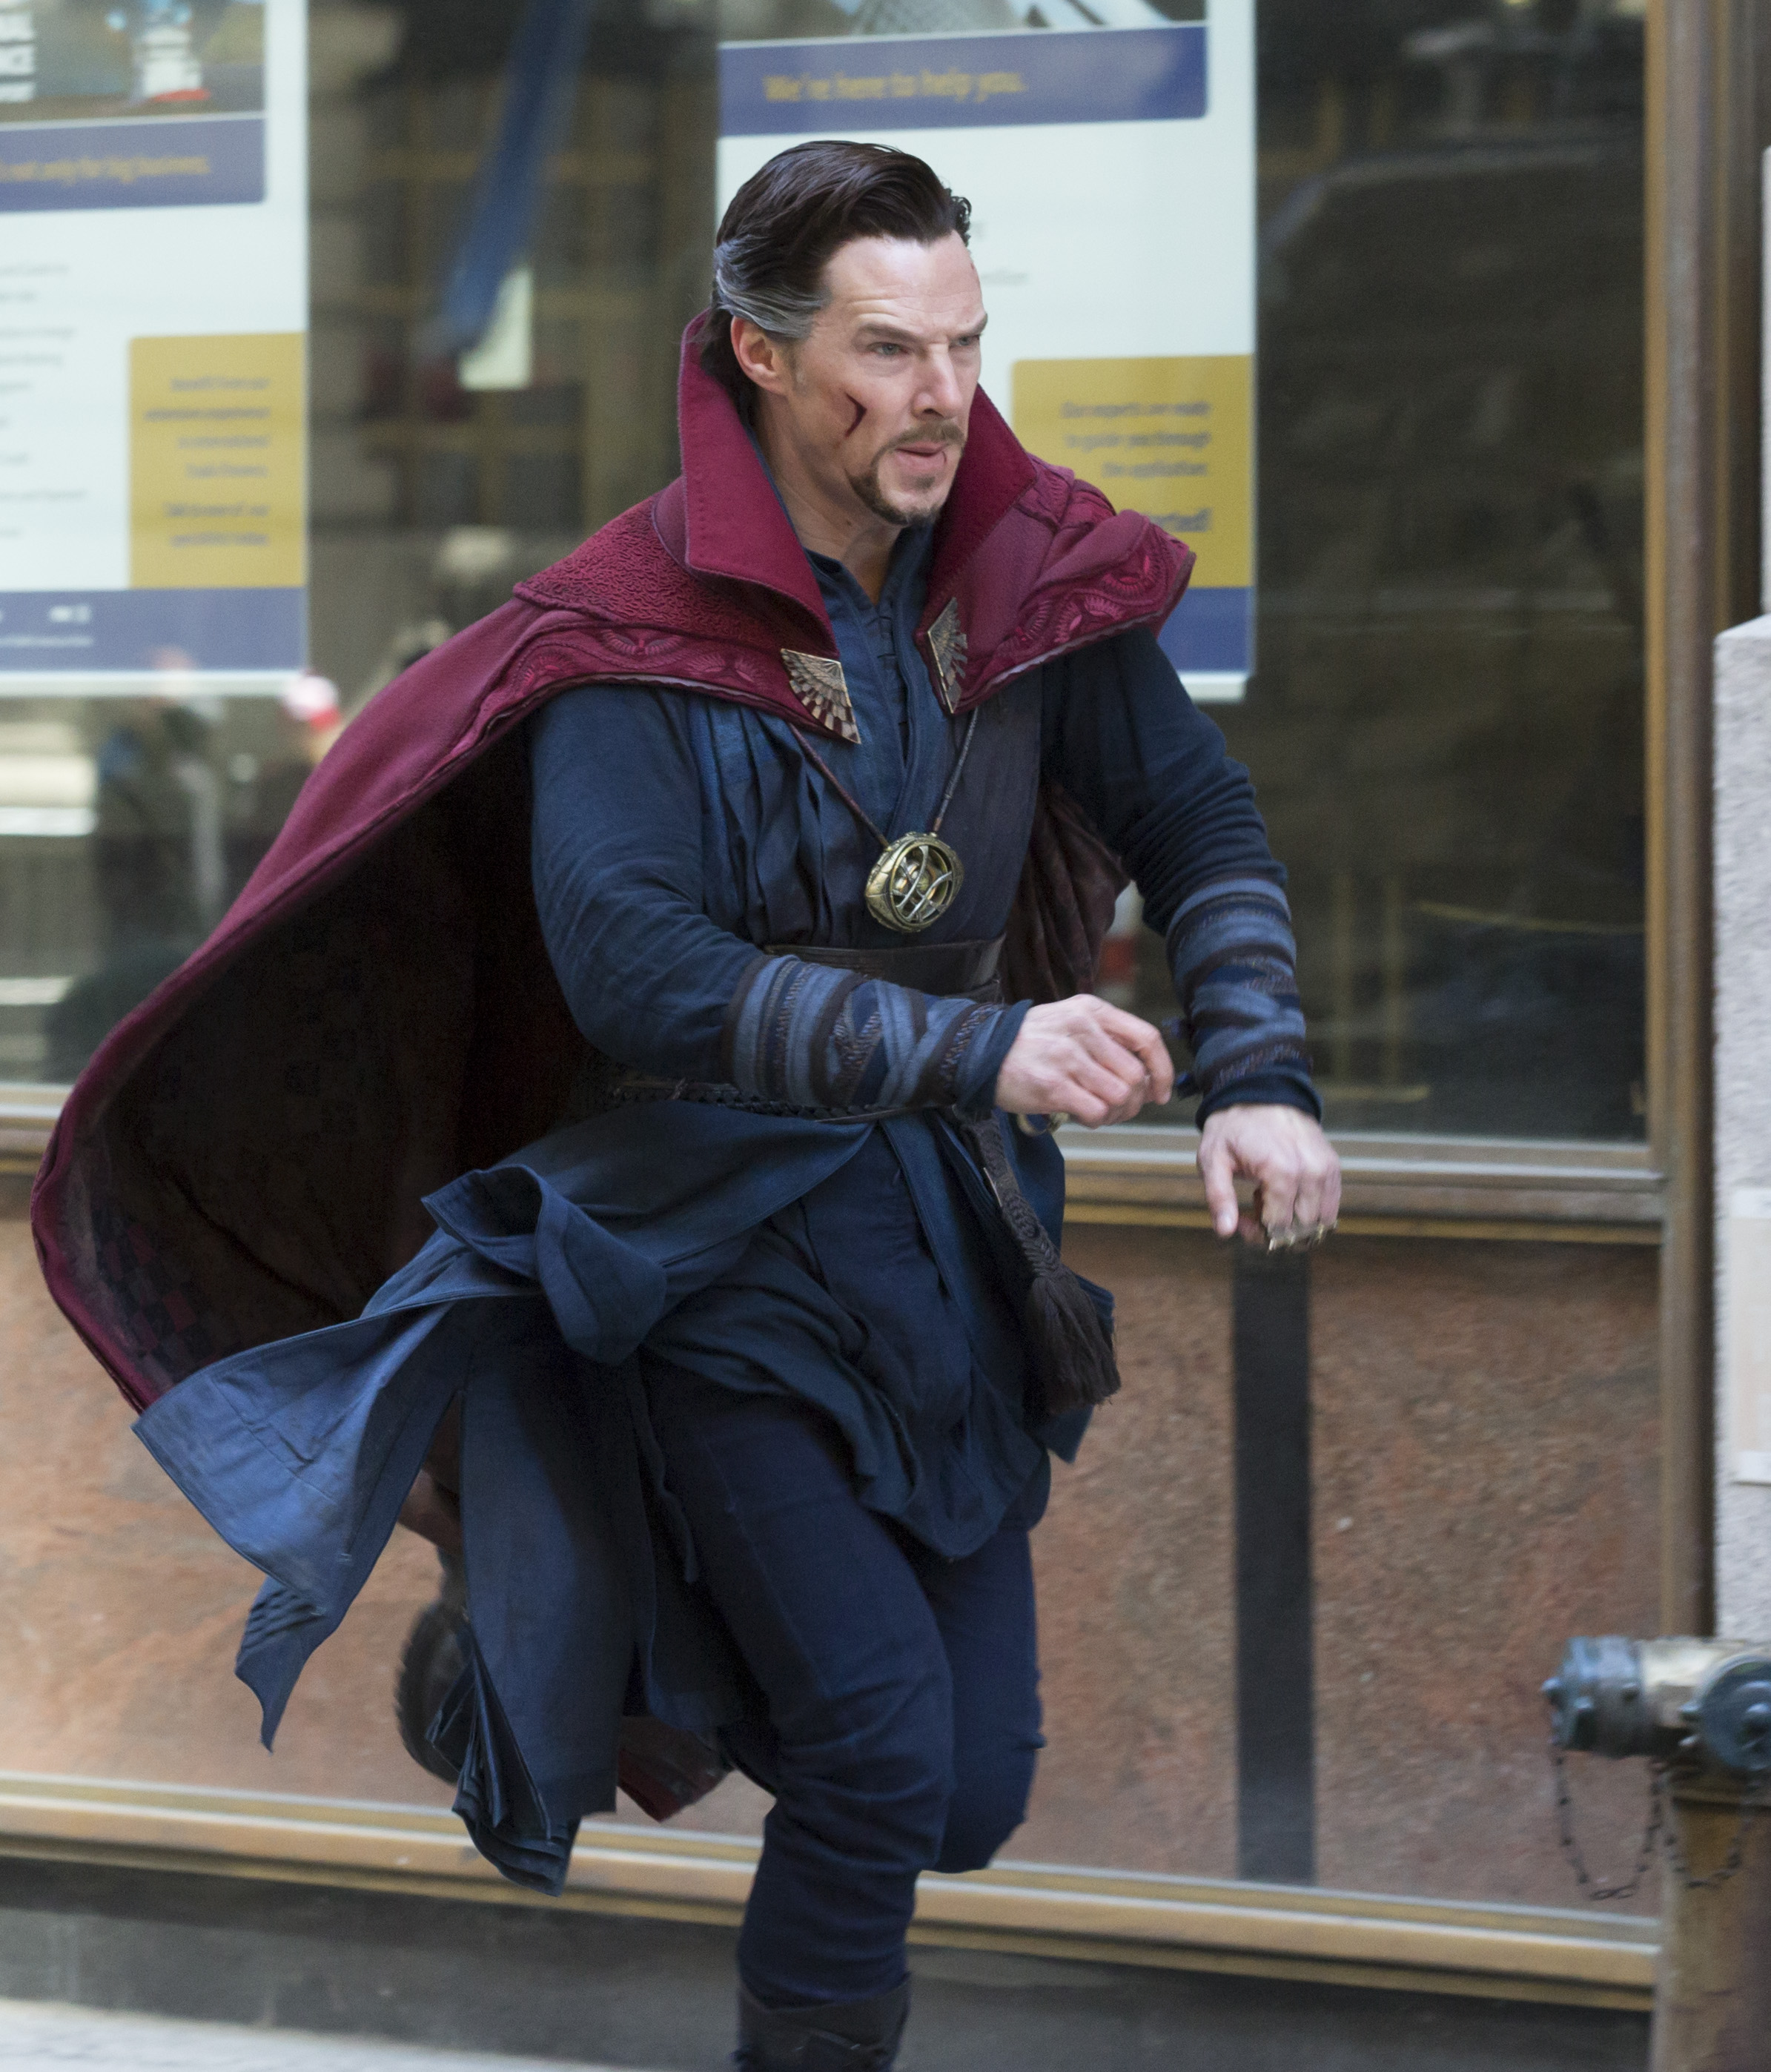 On location with 'Doctor Strange' filming in New York City Featuring: Benedict Cumberbatch Where: New York, New York, United States When: 04 Apr 2016 Credit: WENN.com